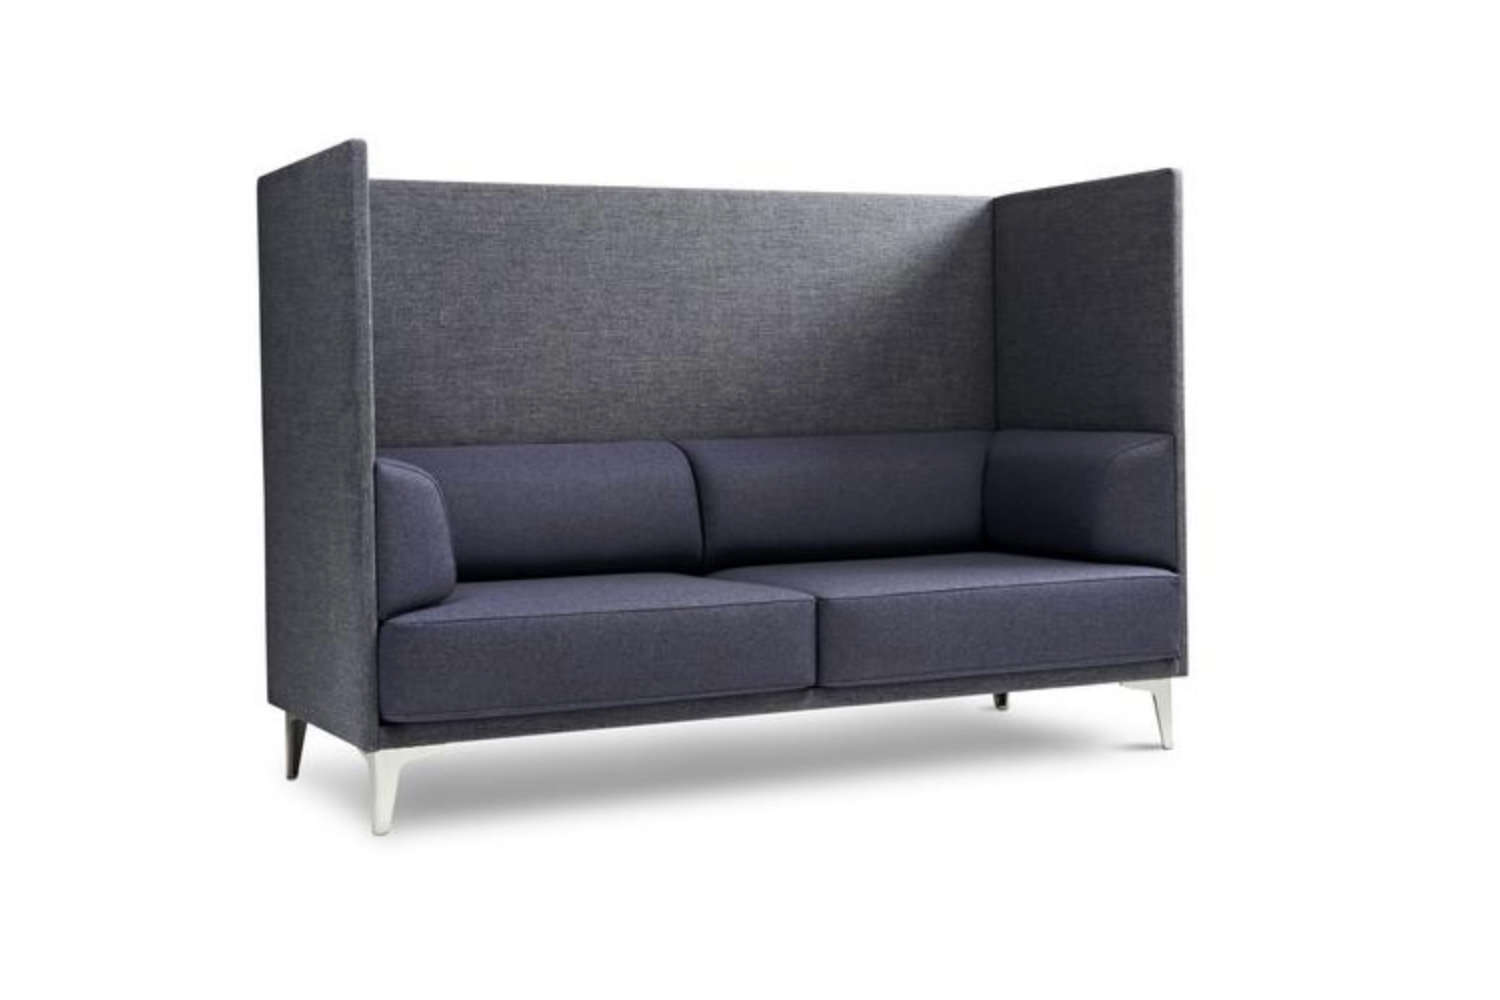 The EJ 400 Apoluna Box Sofa with an extra high back is designed by Studio Hannes Wettstein for Erik Jørgensen as a sheltered space for the living room. It&#8